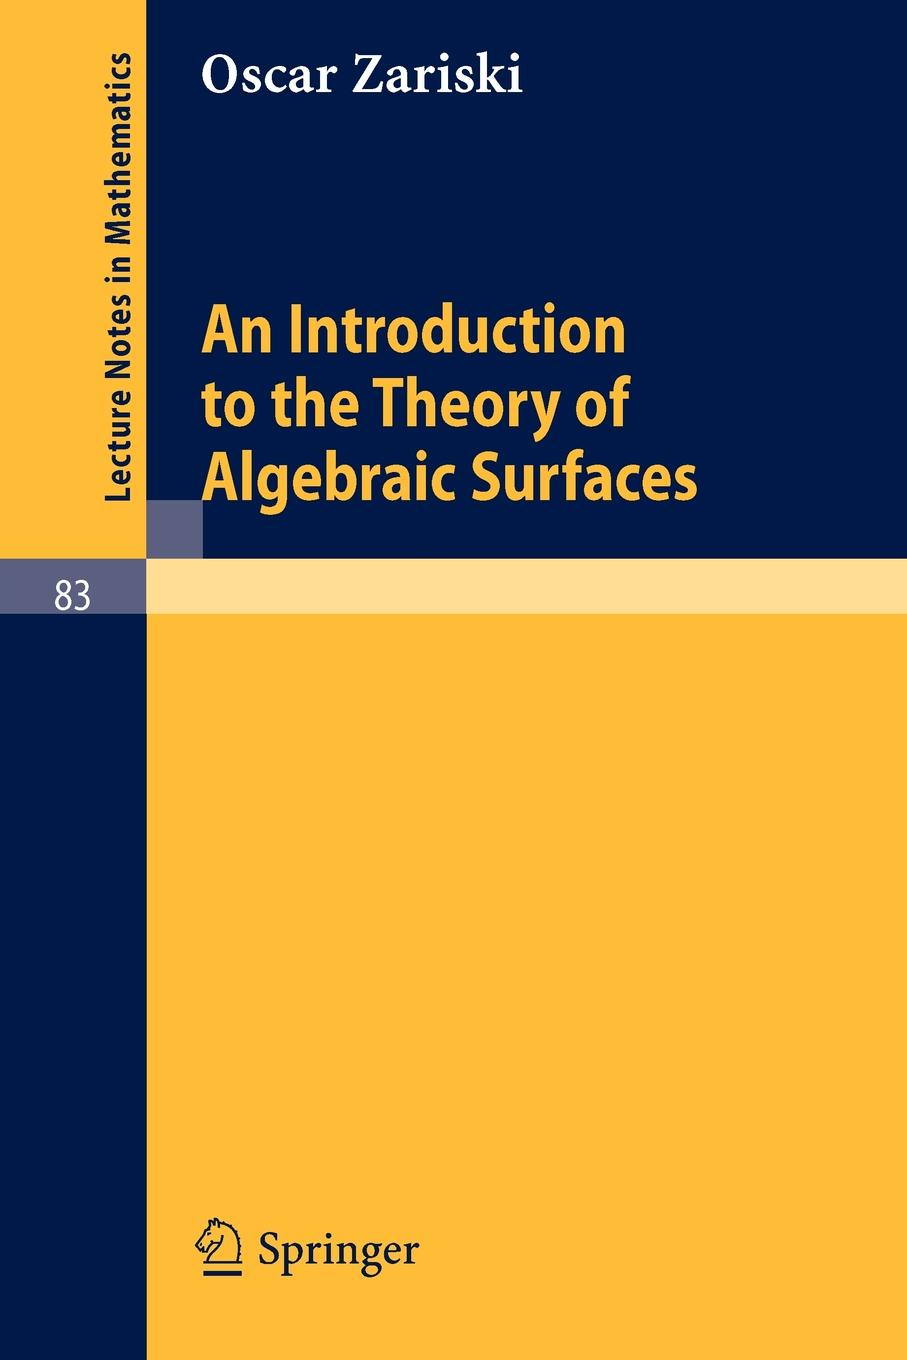 Oscar Zariski An Introduction to the Theory of Algebraic Surfaces norman l alling newcomb greenleaf foundations of the theory of klein surfaces